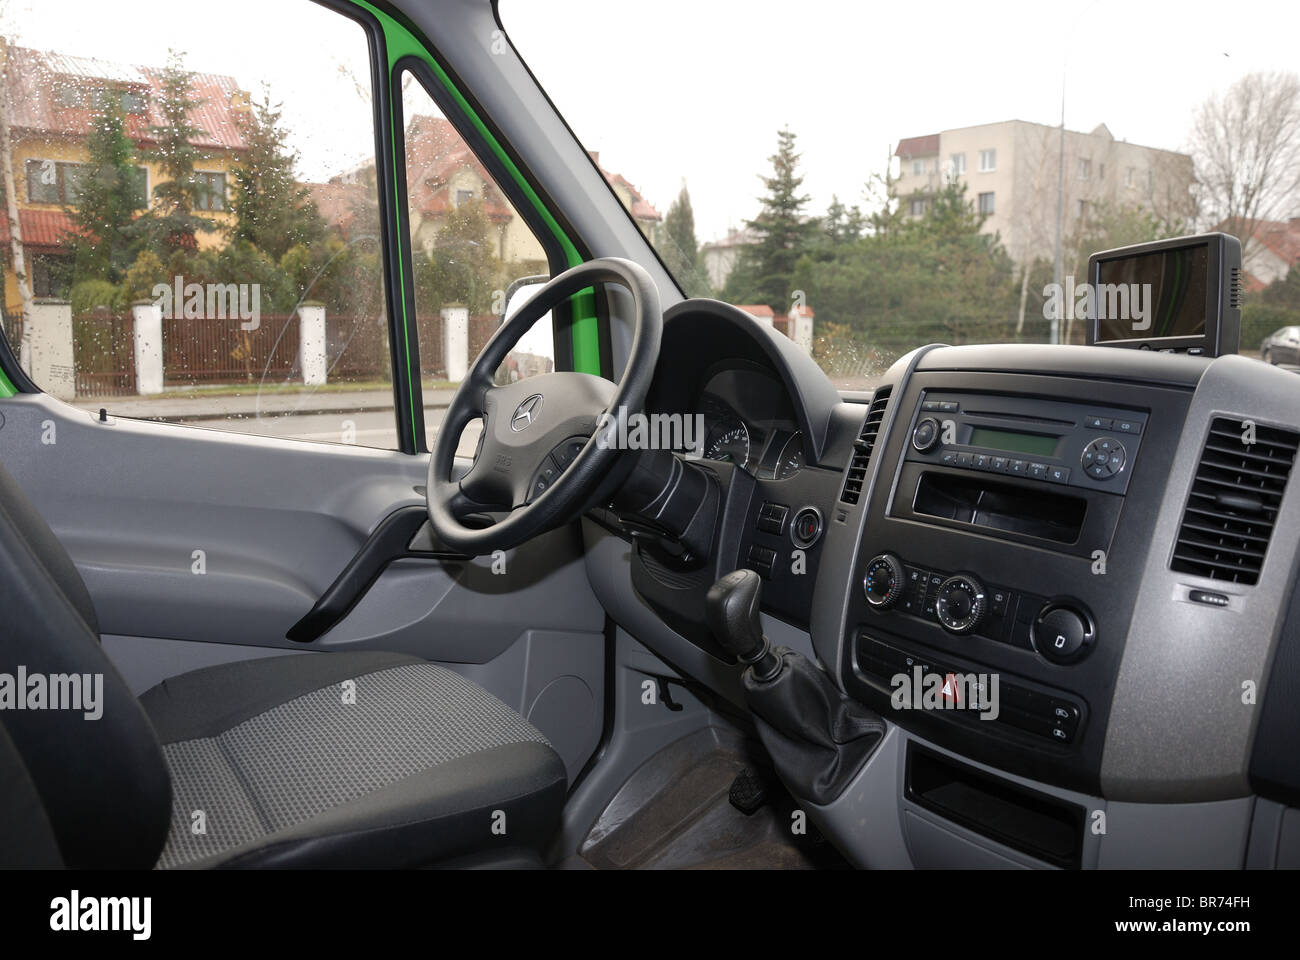 c0f60c1a5e Mercedes-Benz Sprinter 260 CDI Van - green - L3H2 - German MCV ...